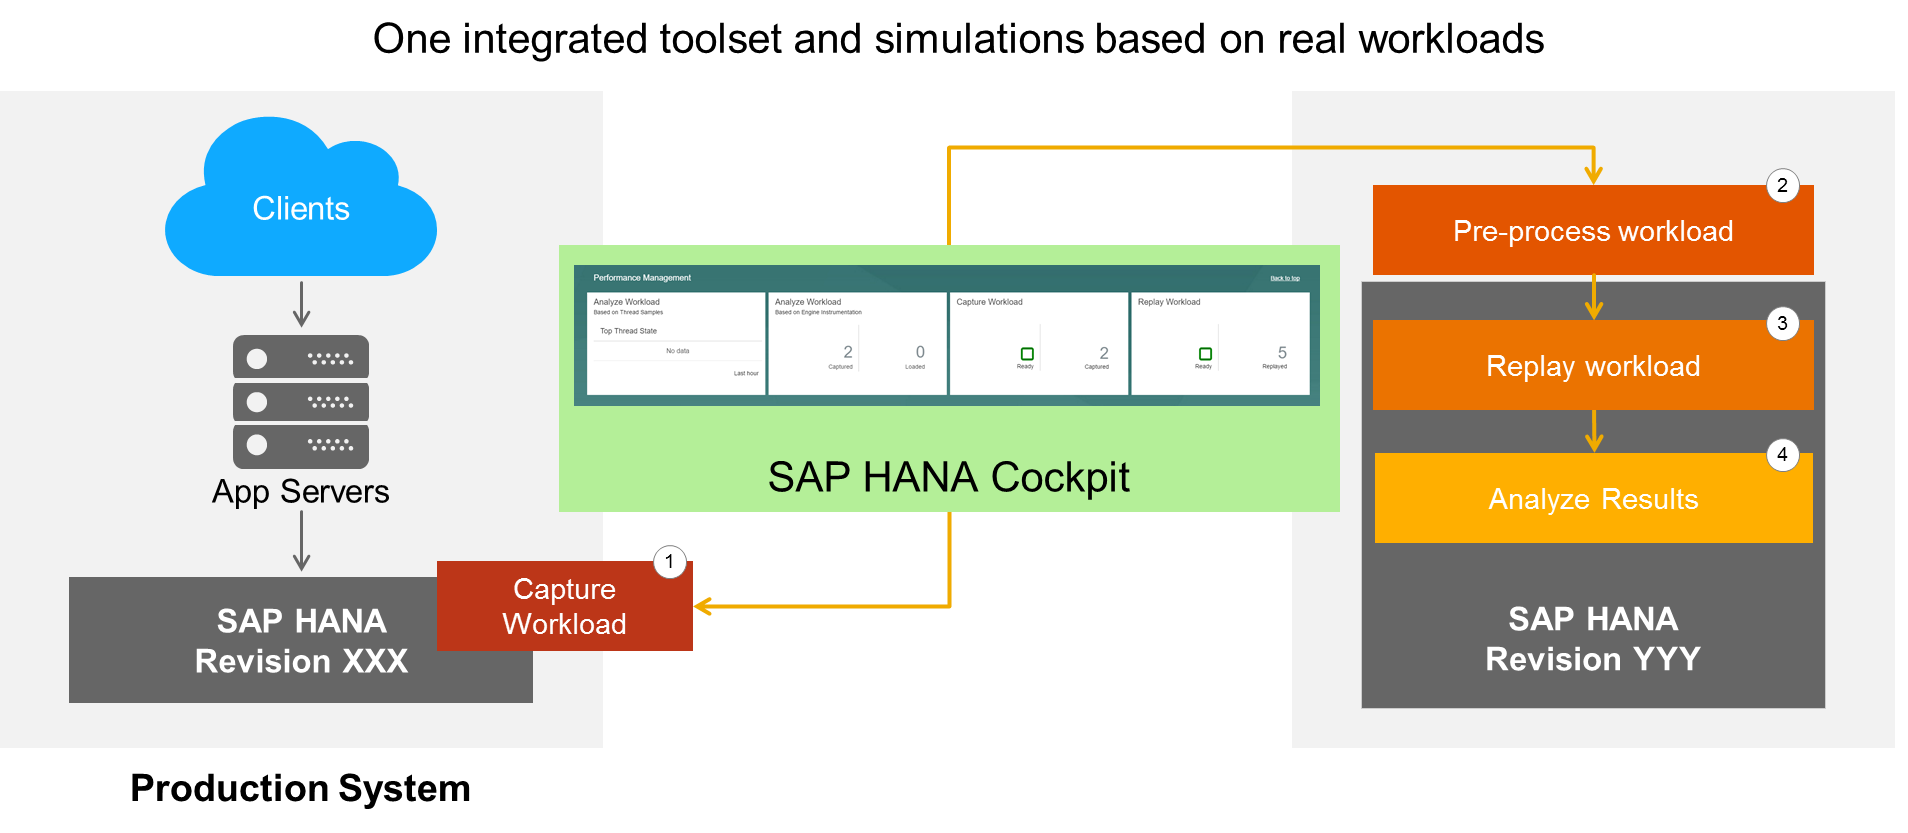 A Short Overview Of The Sap Hana Performance Management Tools In Sap Hana 2 0 Sps00